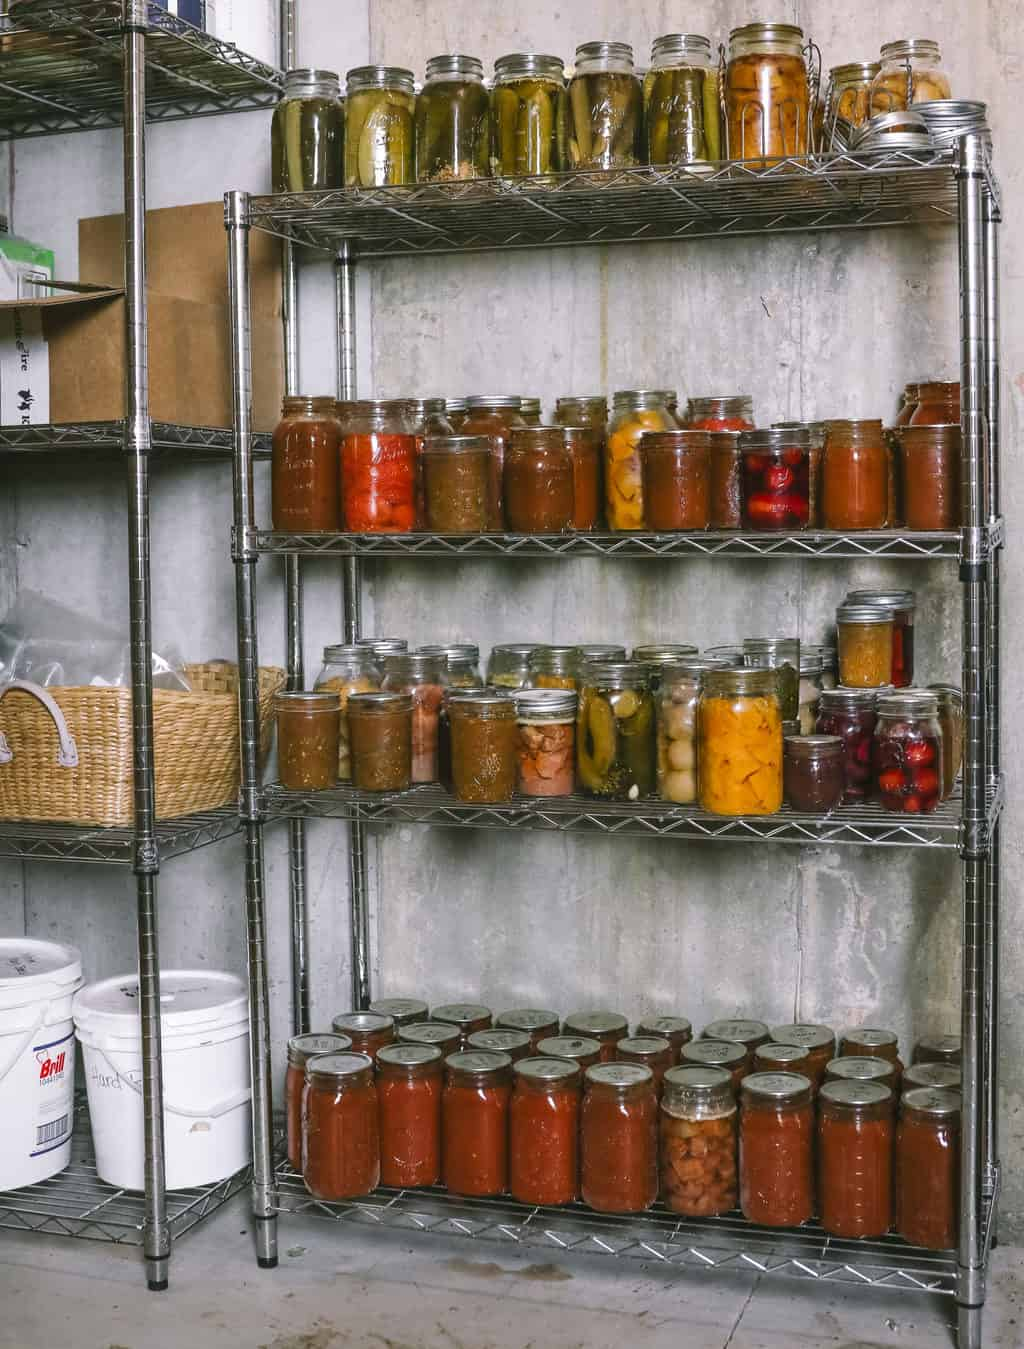 pantry of home canned food